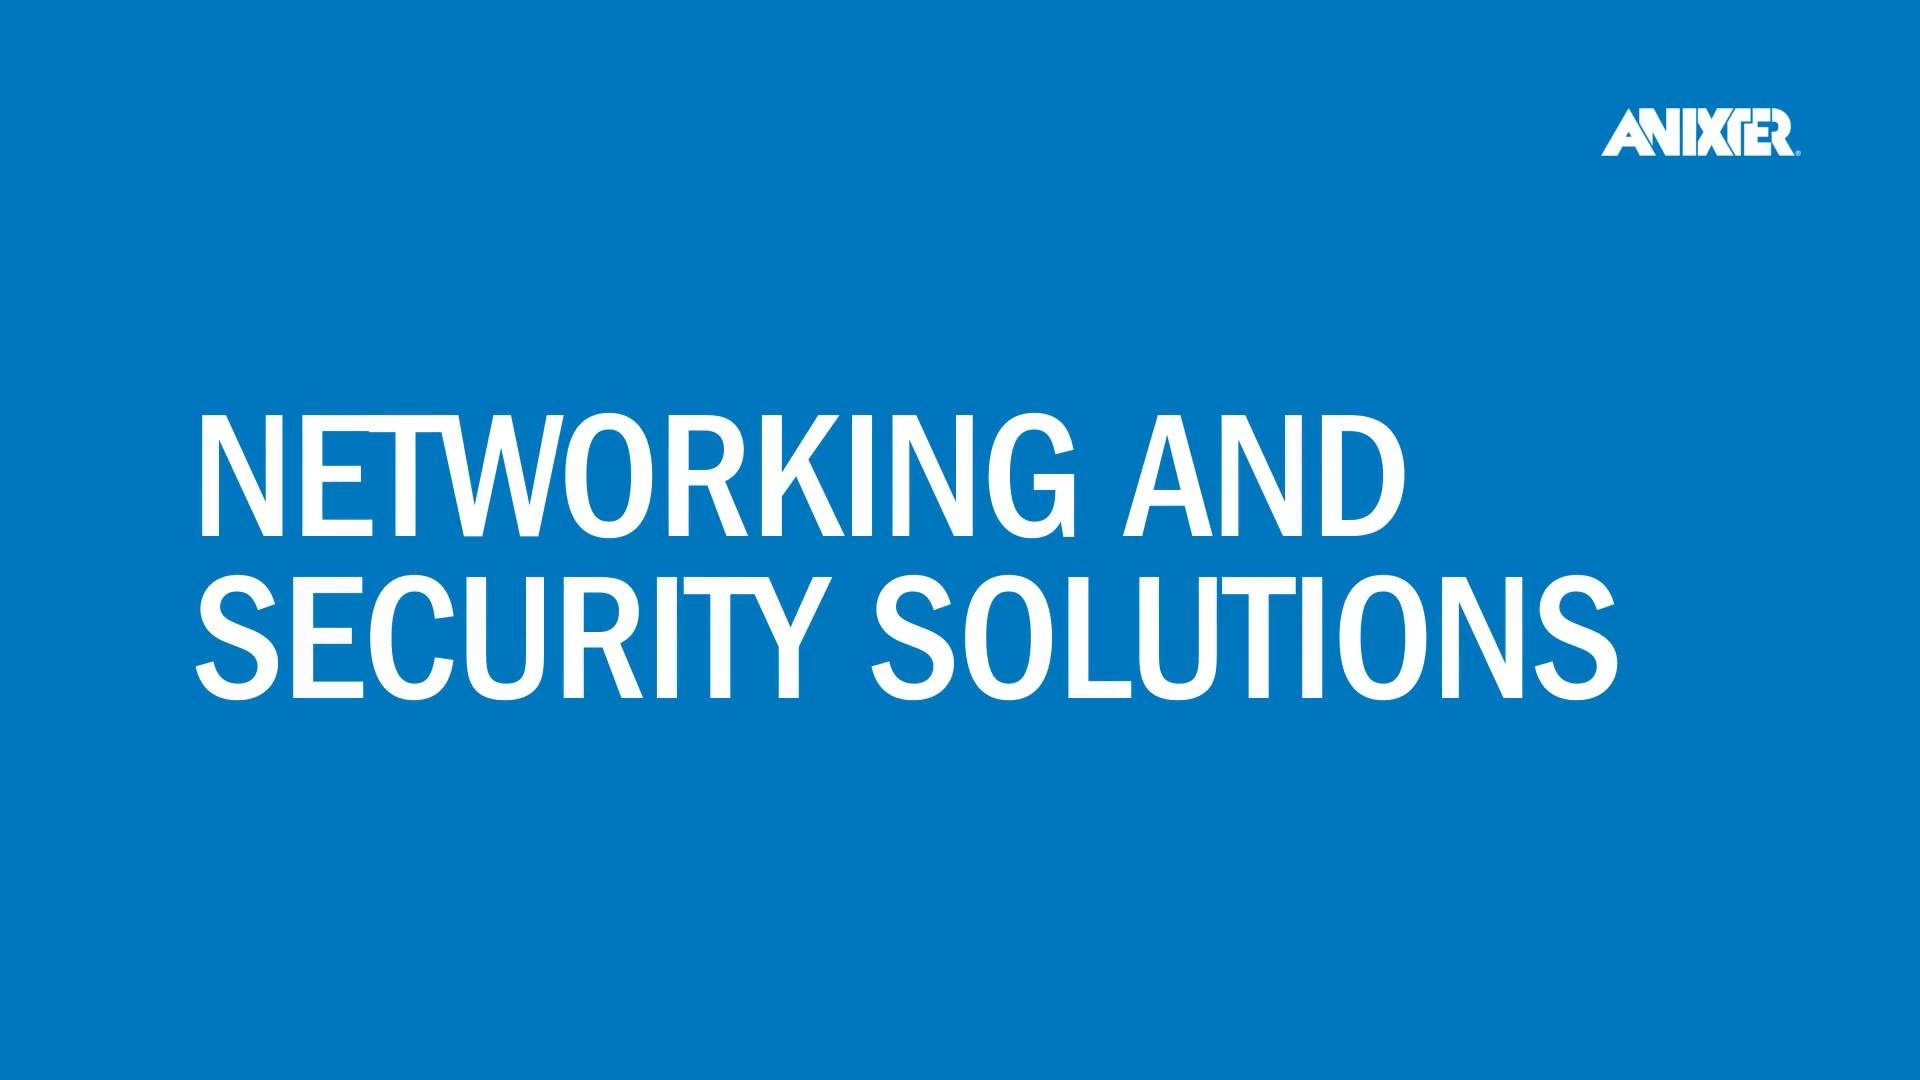 Network Infrastructure Enterprise Networks Structured Cabling Wiring Solutions